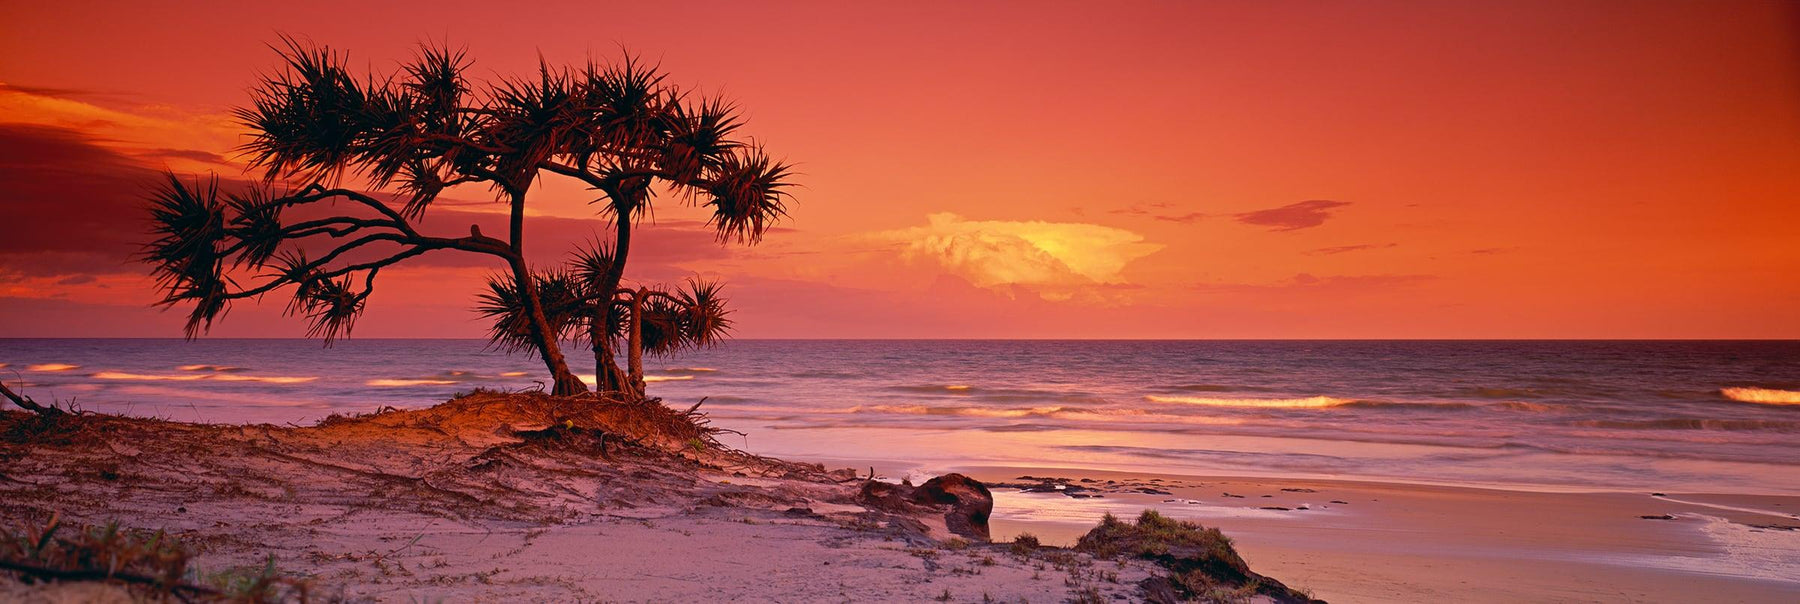 Pandanus tree in the foreground of the sand dune beach of Fraser Island Australia at sunrise